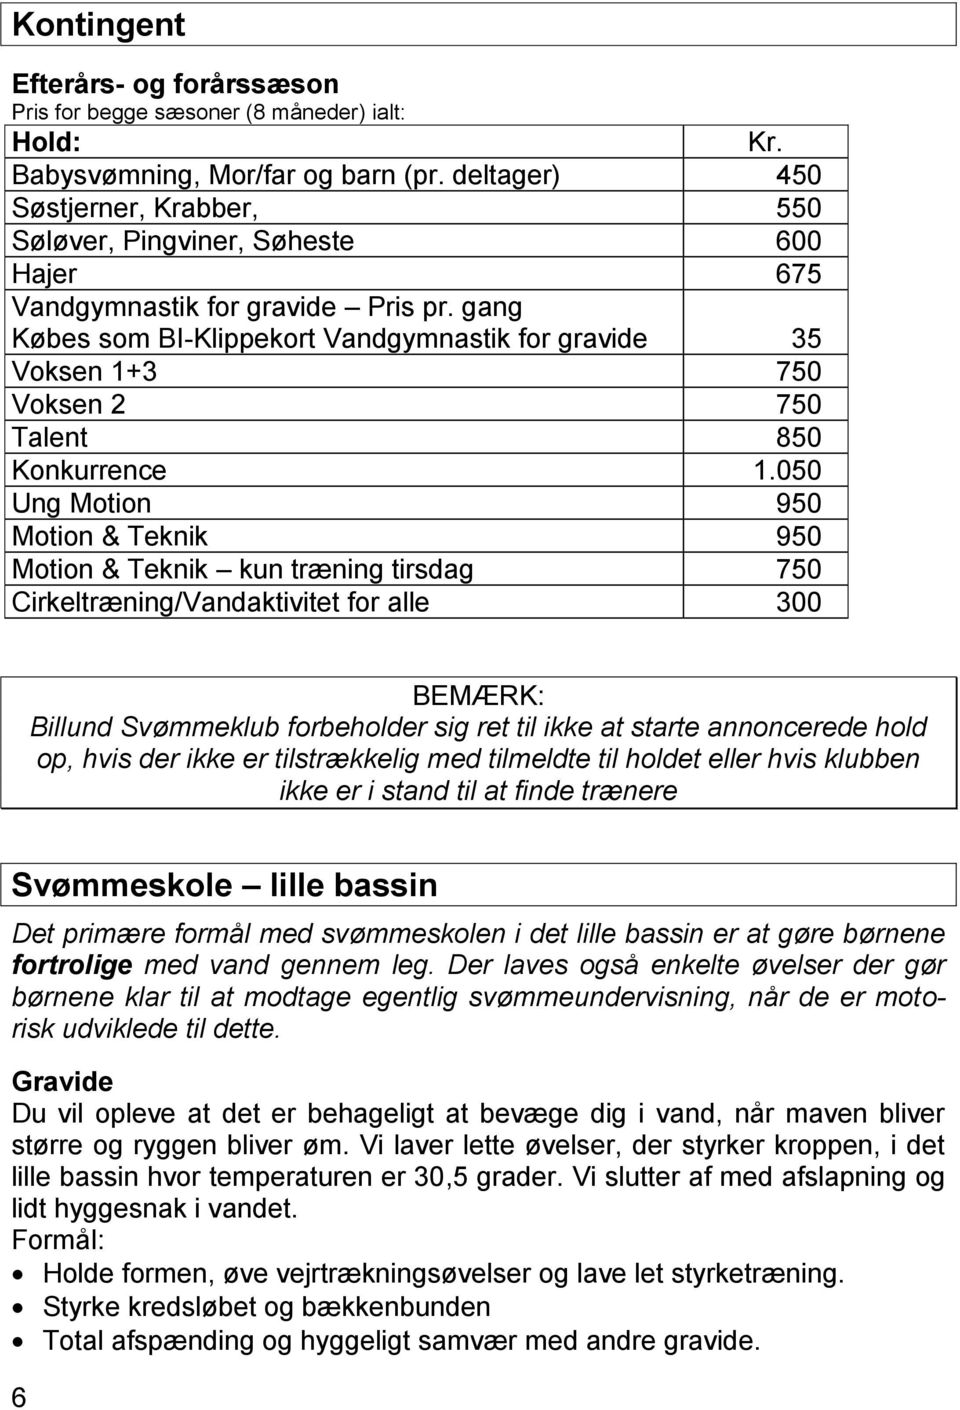 gang Købes som BI-Klippekort Vandgymnastik for gravide 35 Voksen 1+3 750 Voksen 2 750 Talent 850 Konkurrence 1.